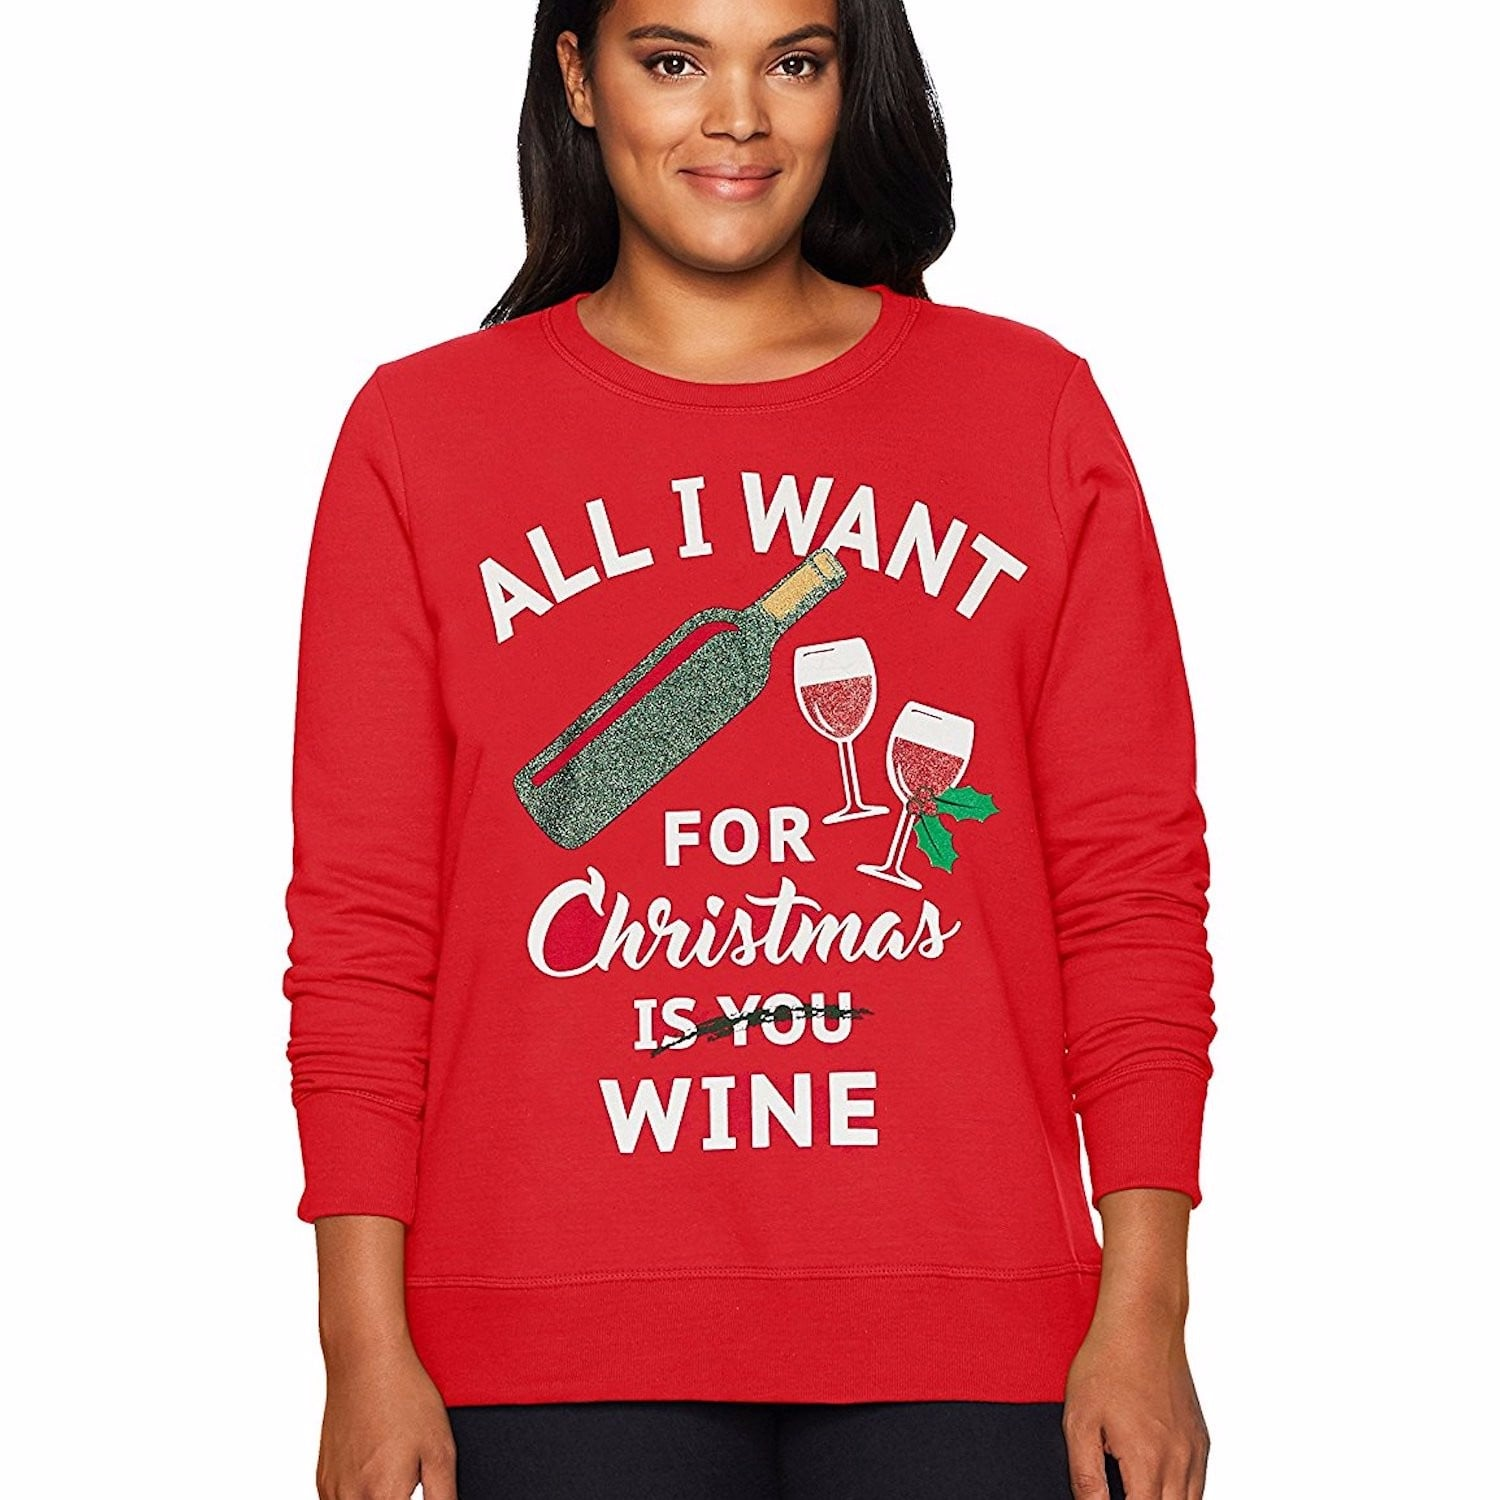 christmas sweaters on amazon popsugar family - Amazon Christmas Sweater